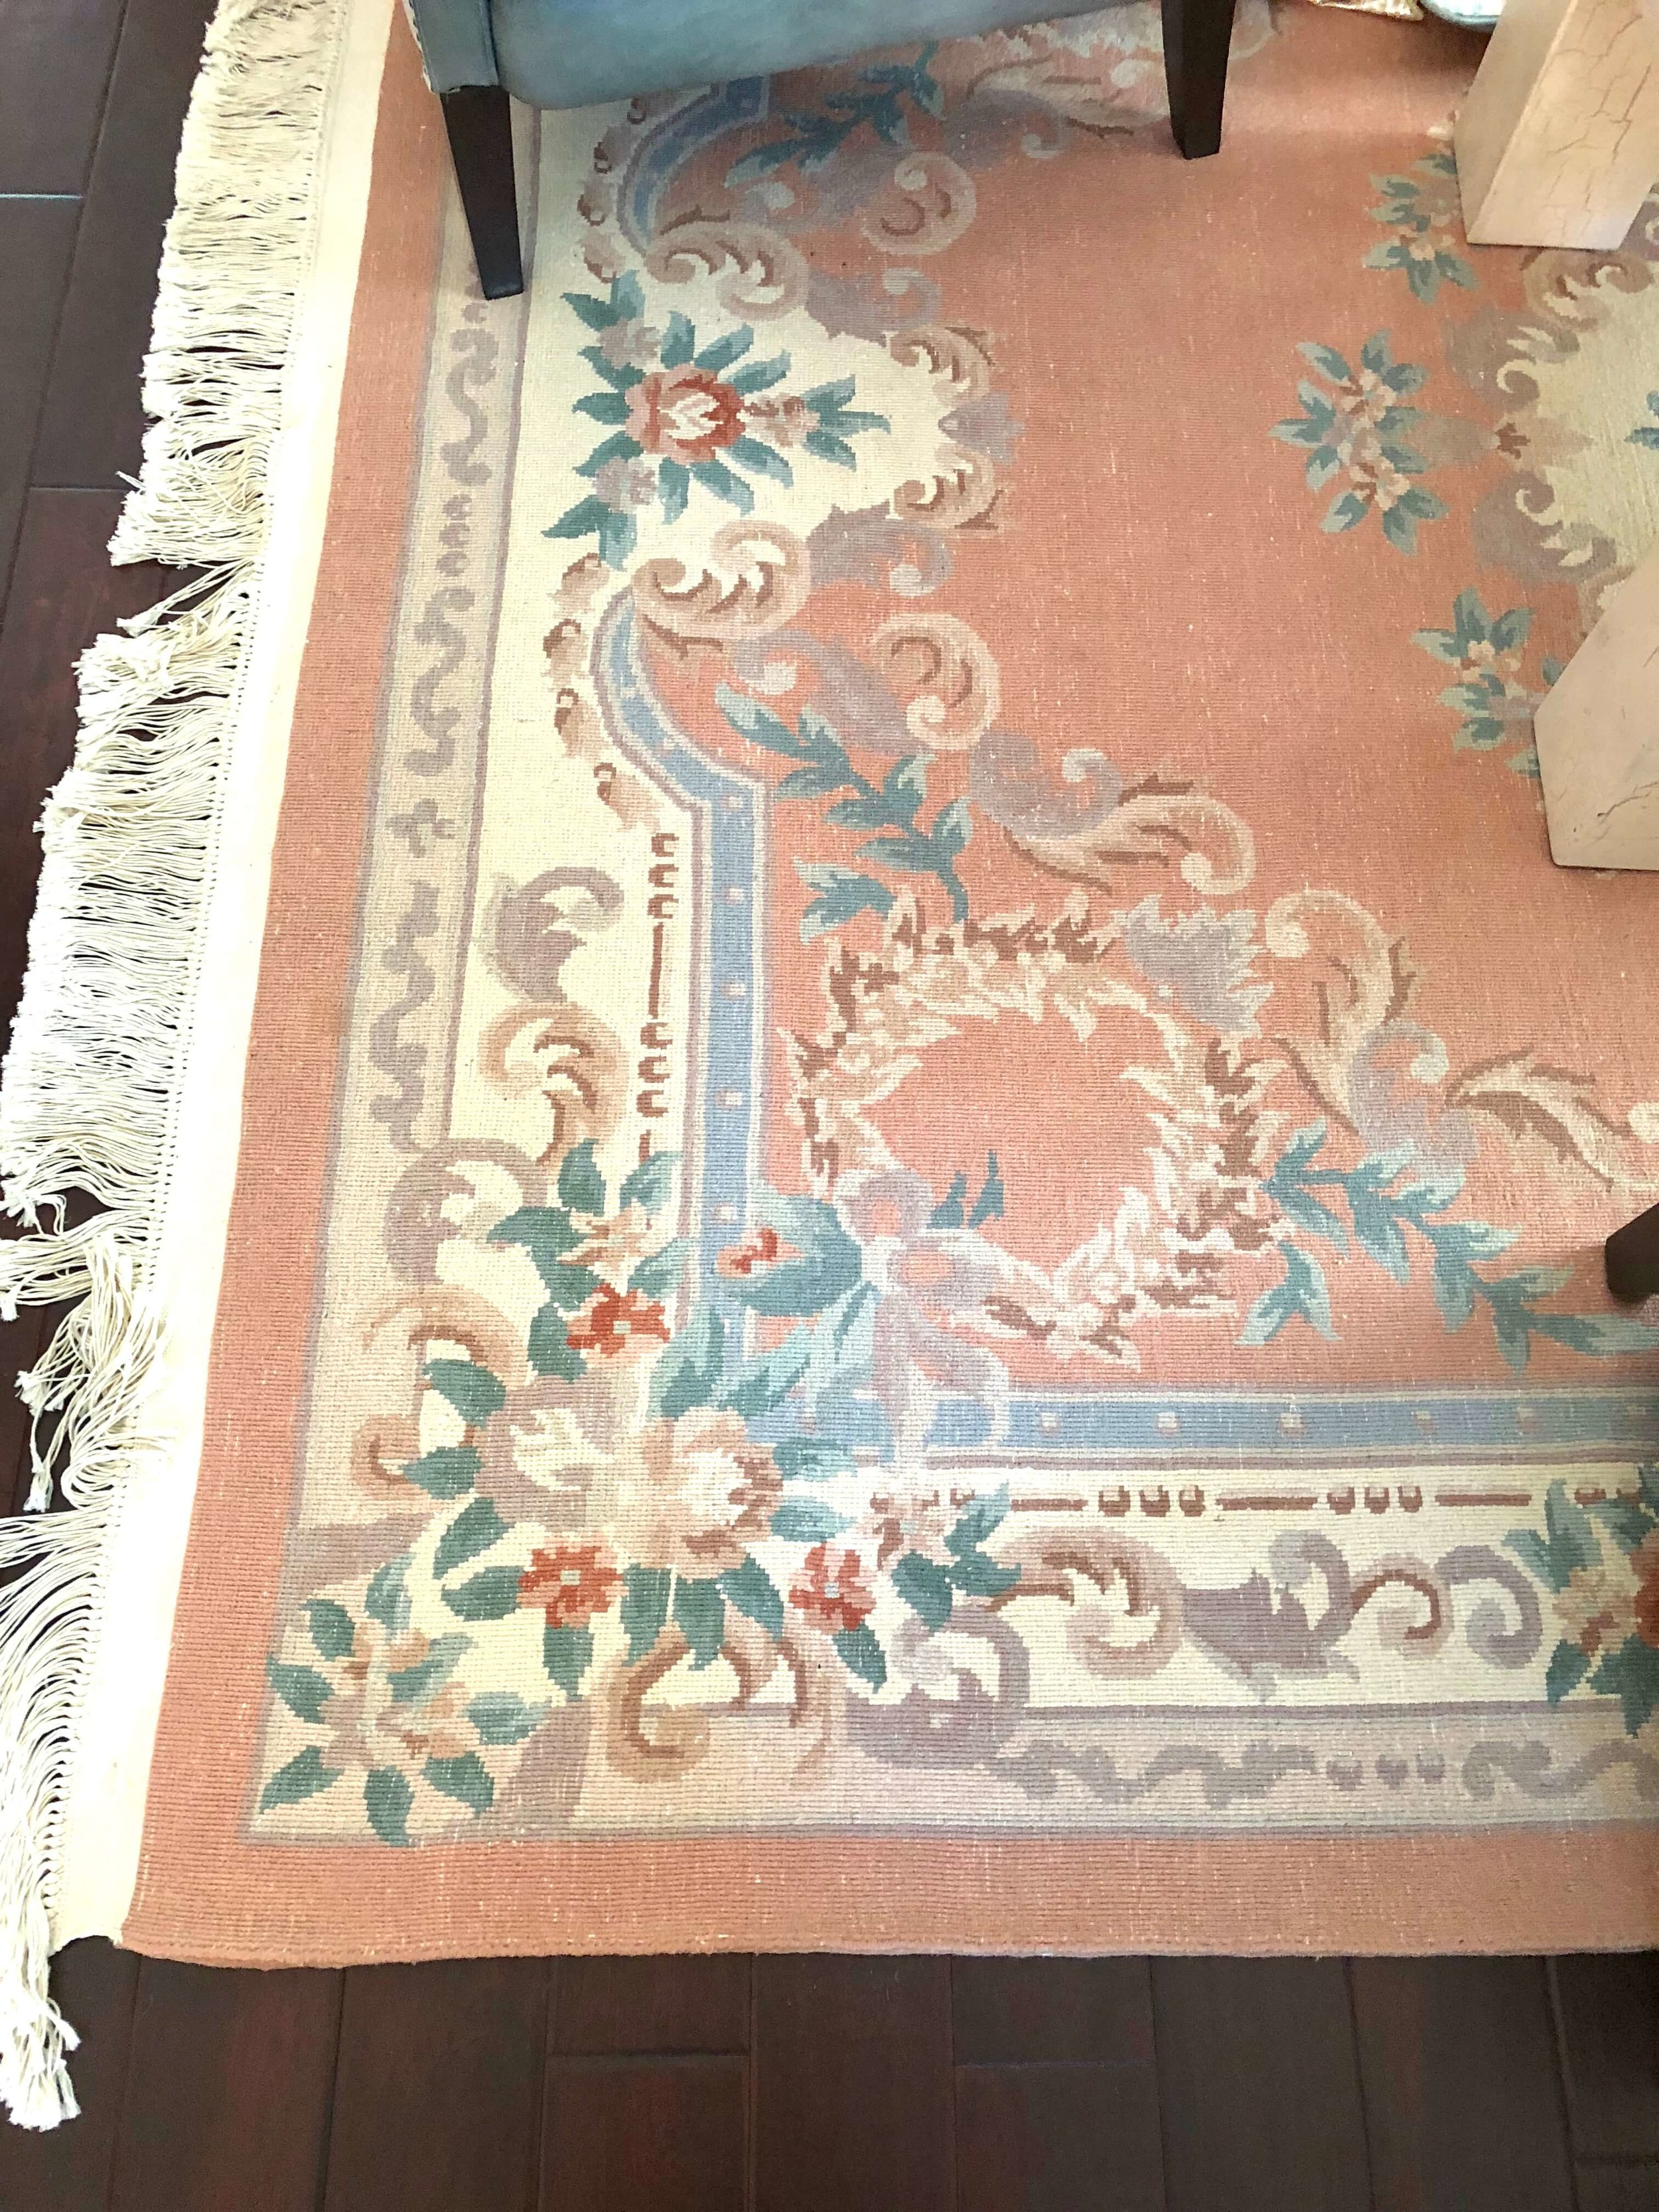 DECORATING TRICK to tone down brightly colored rugs | Love the flatweave look this rug now has | #rugs #orientalrug